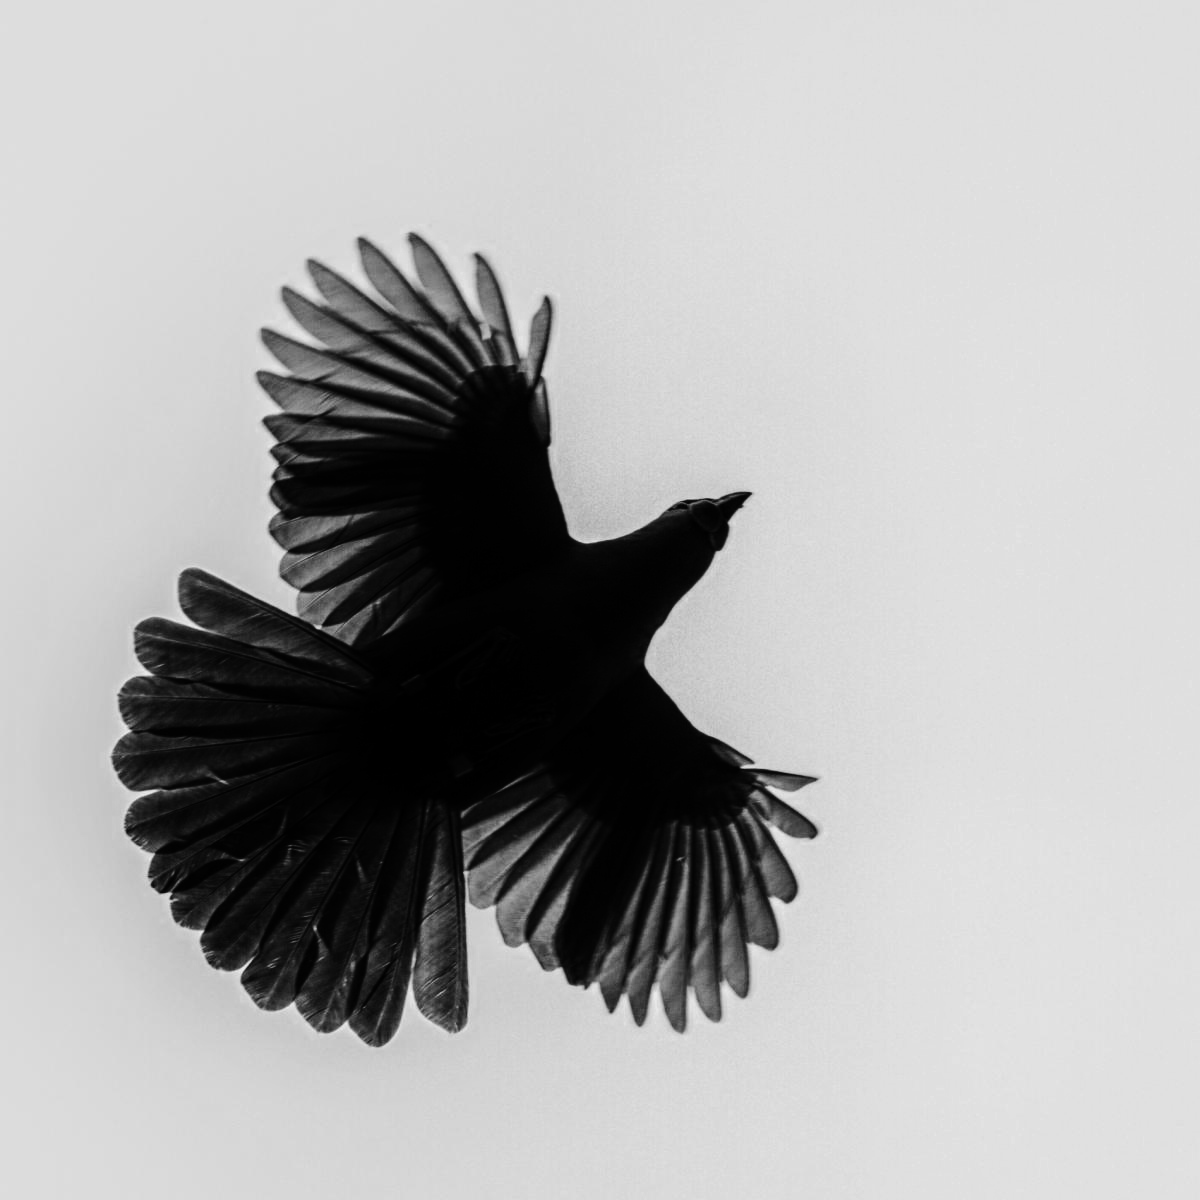 Original photo of NI kōkako by Martin Sanders, altered to illustrate silhouette